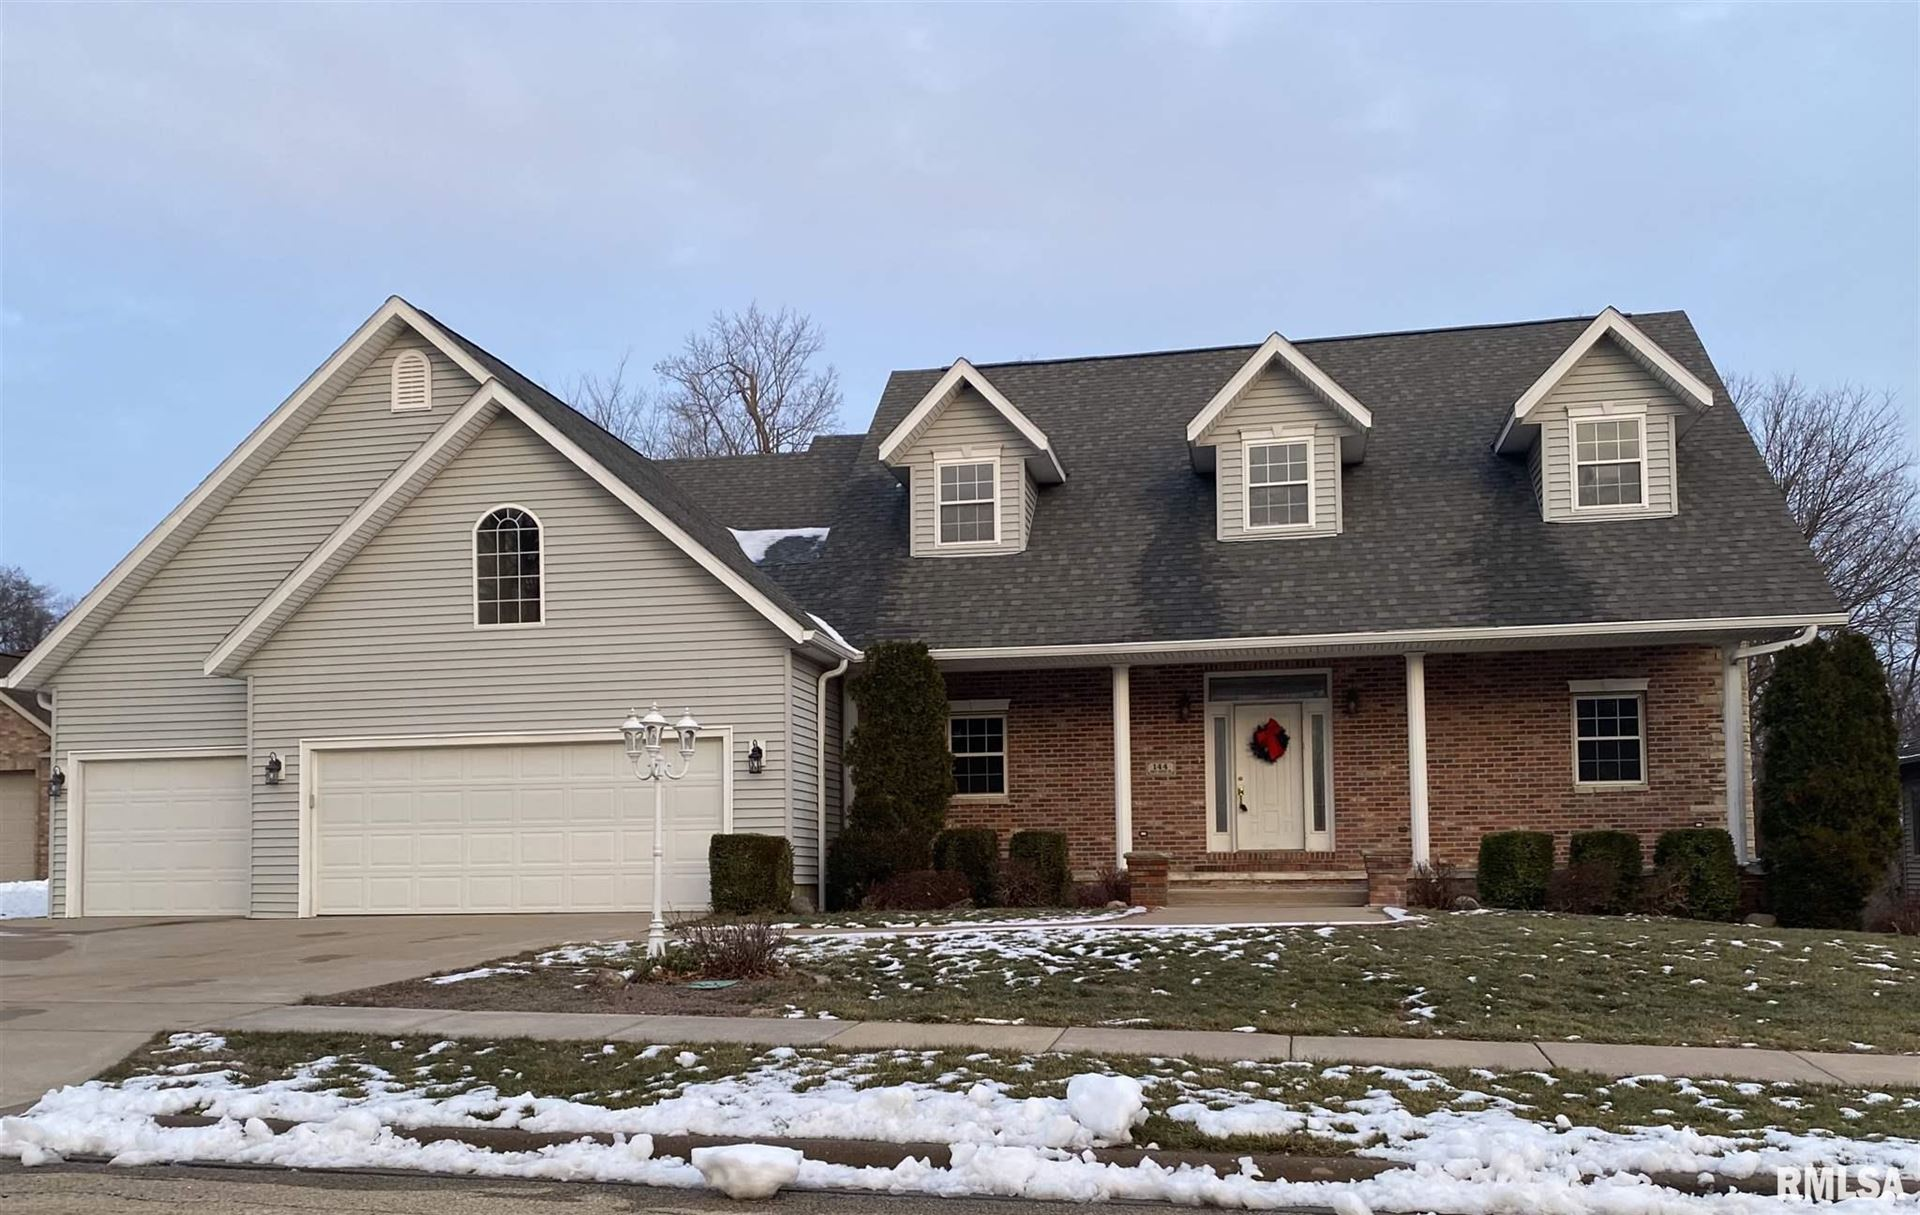 144 FAWN HAVEN Drive, East Peoria, IL 61611 - #: PA1221656